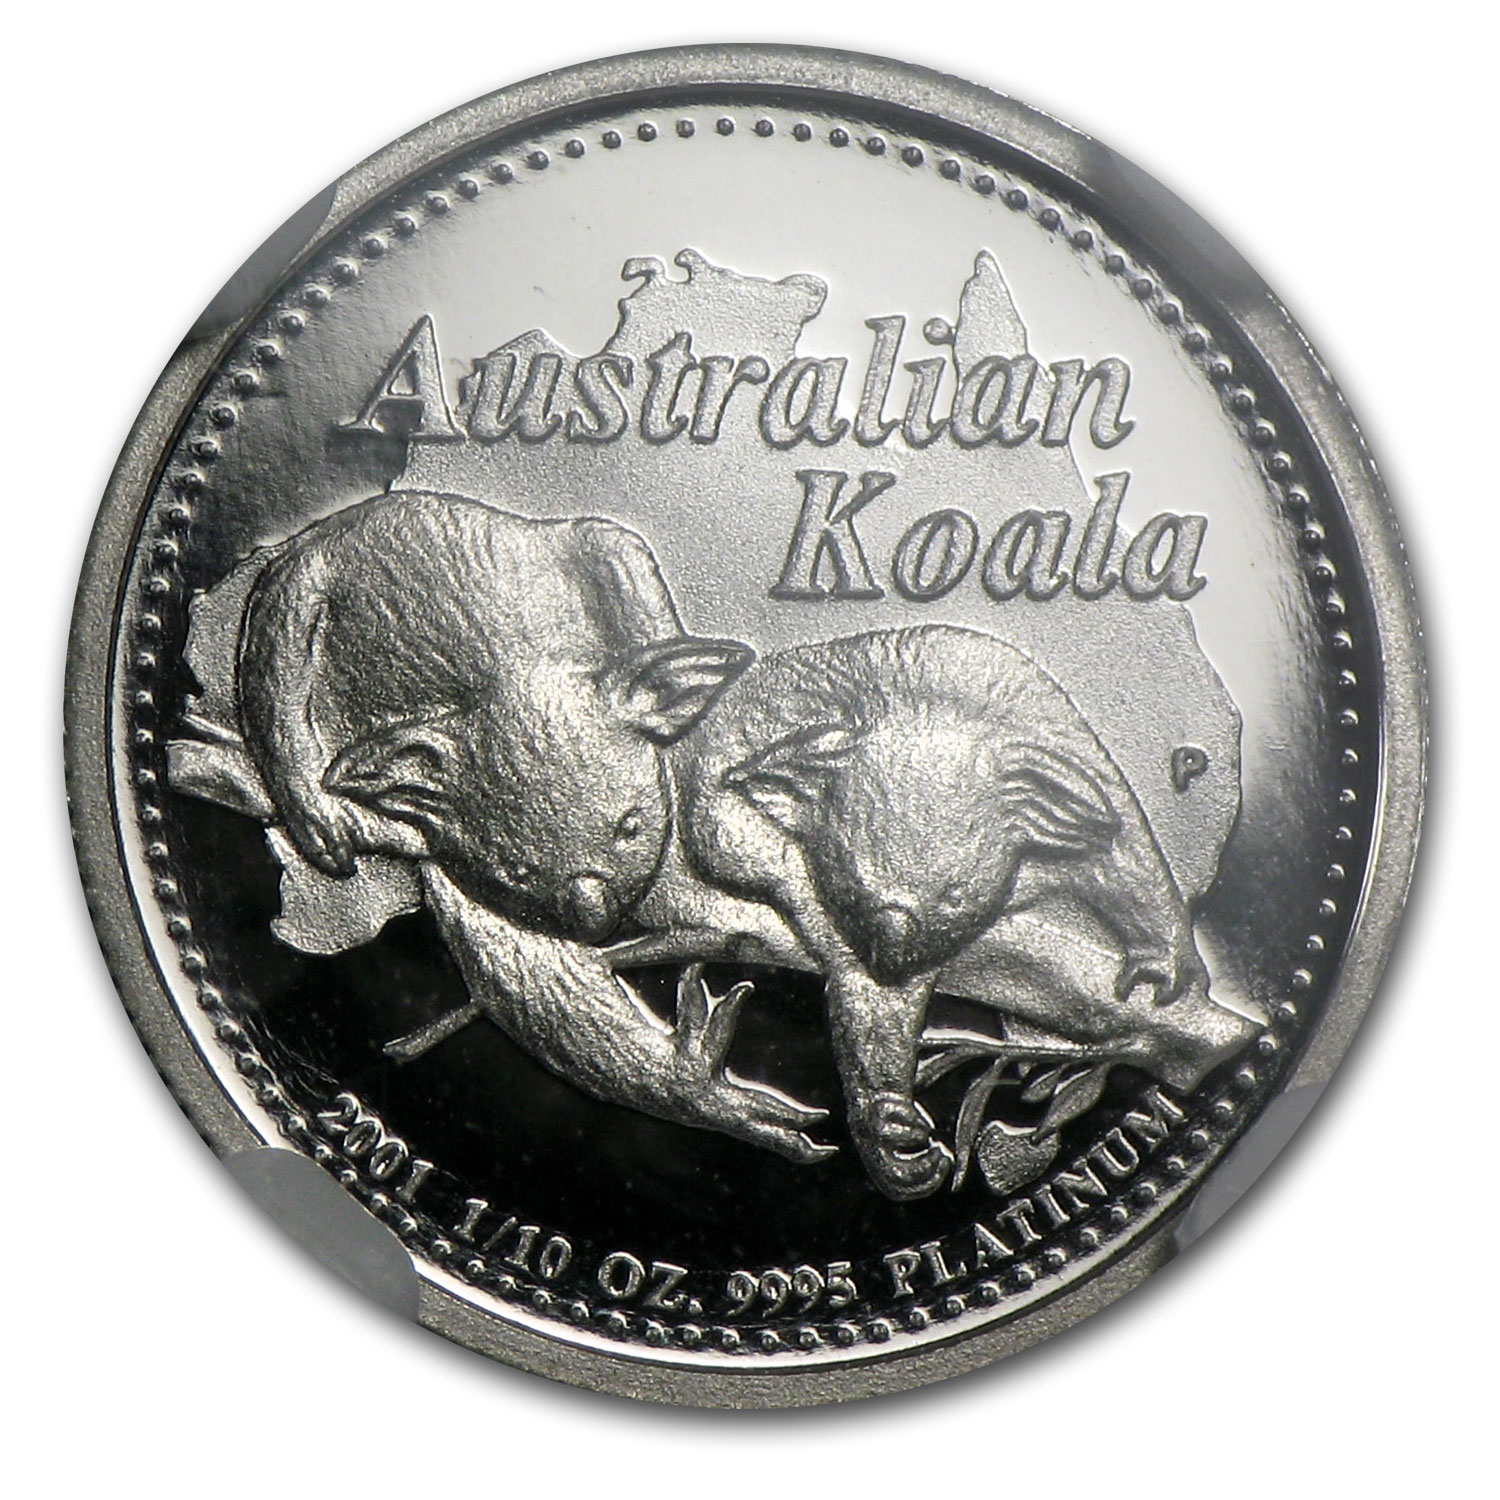 2001 Australia 1/10 oz Proof Platinum Koala PF-70 NGC